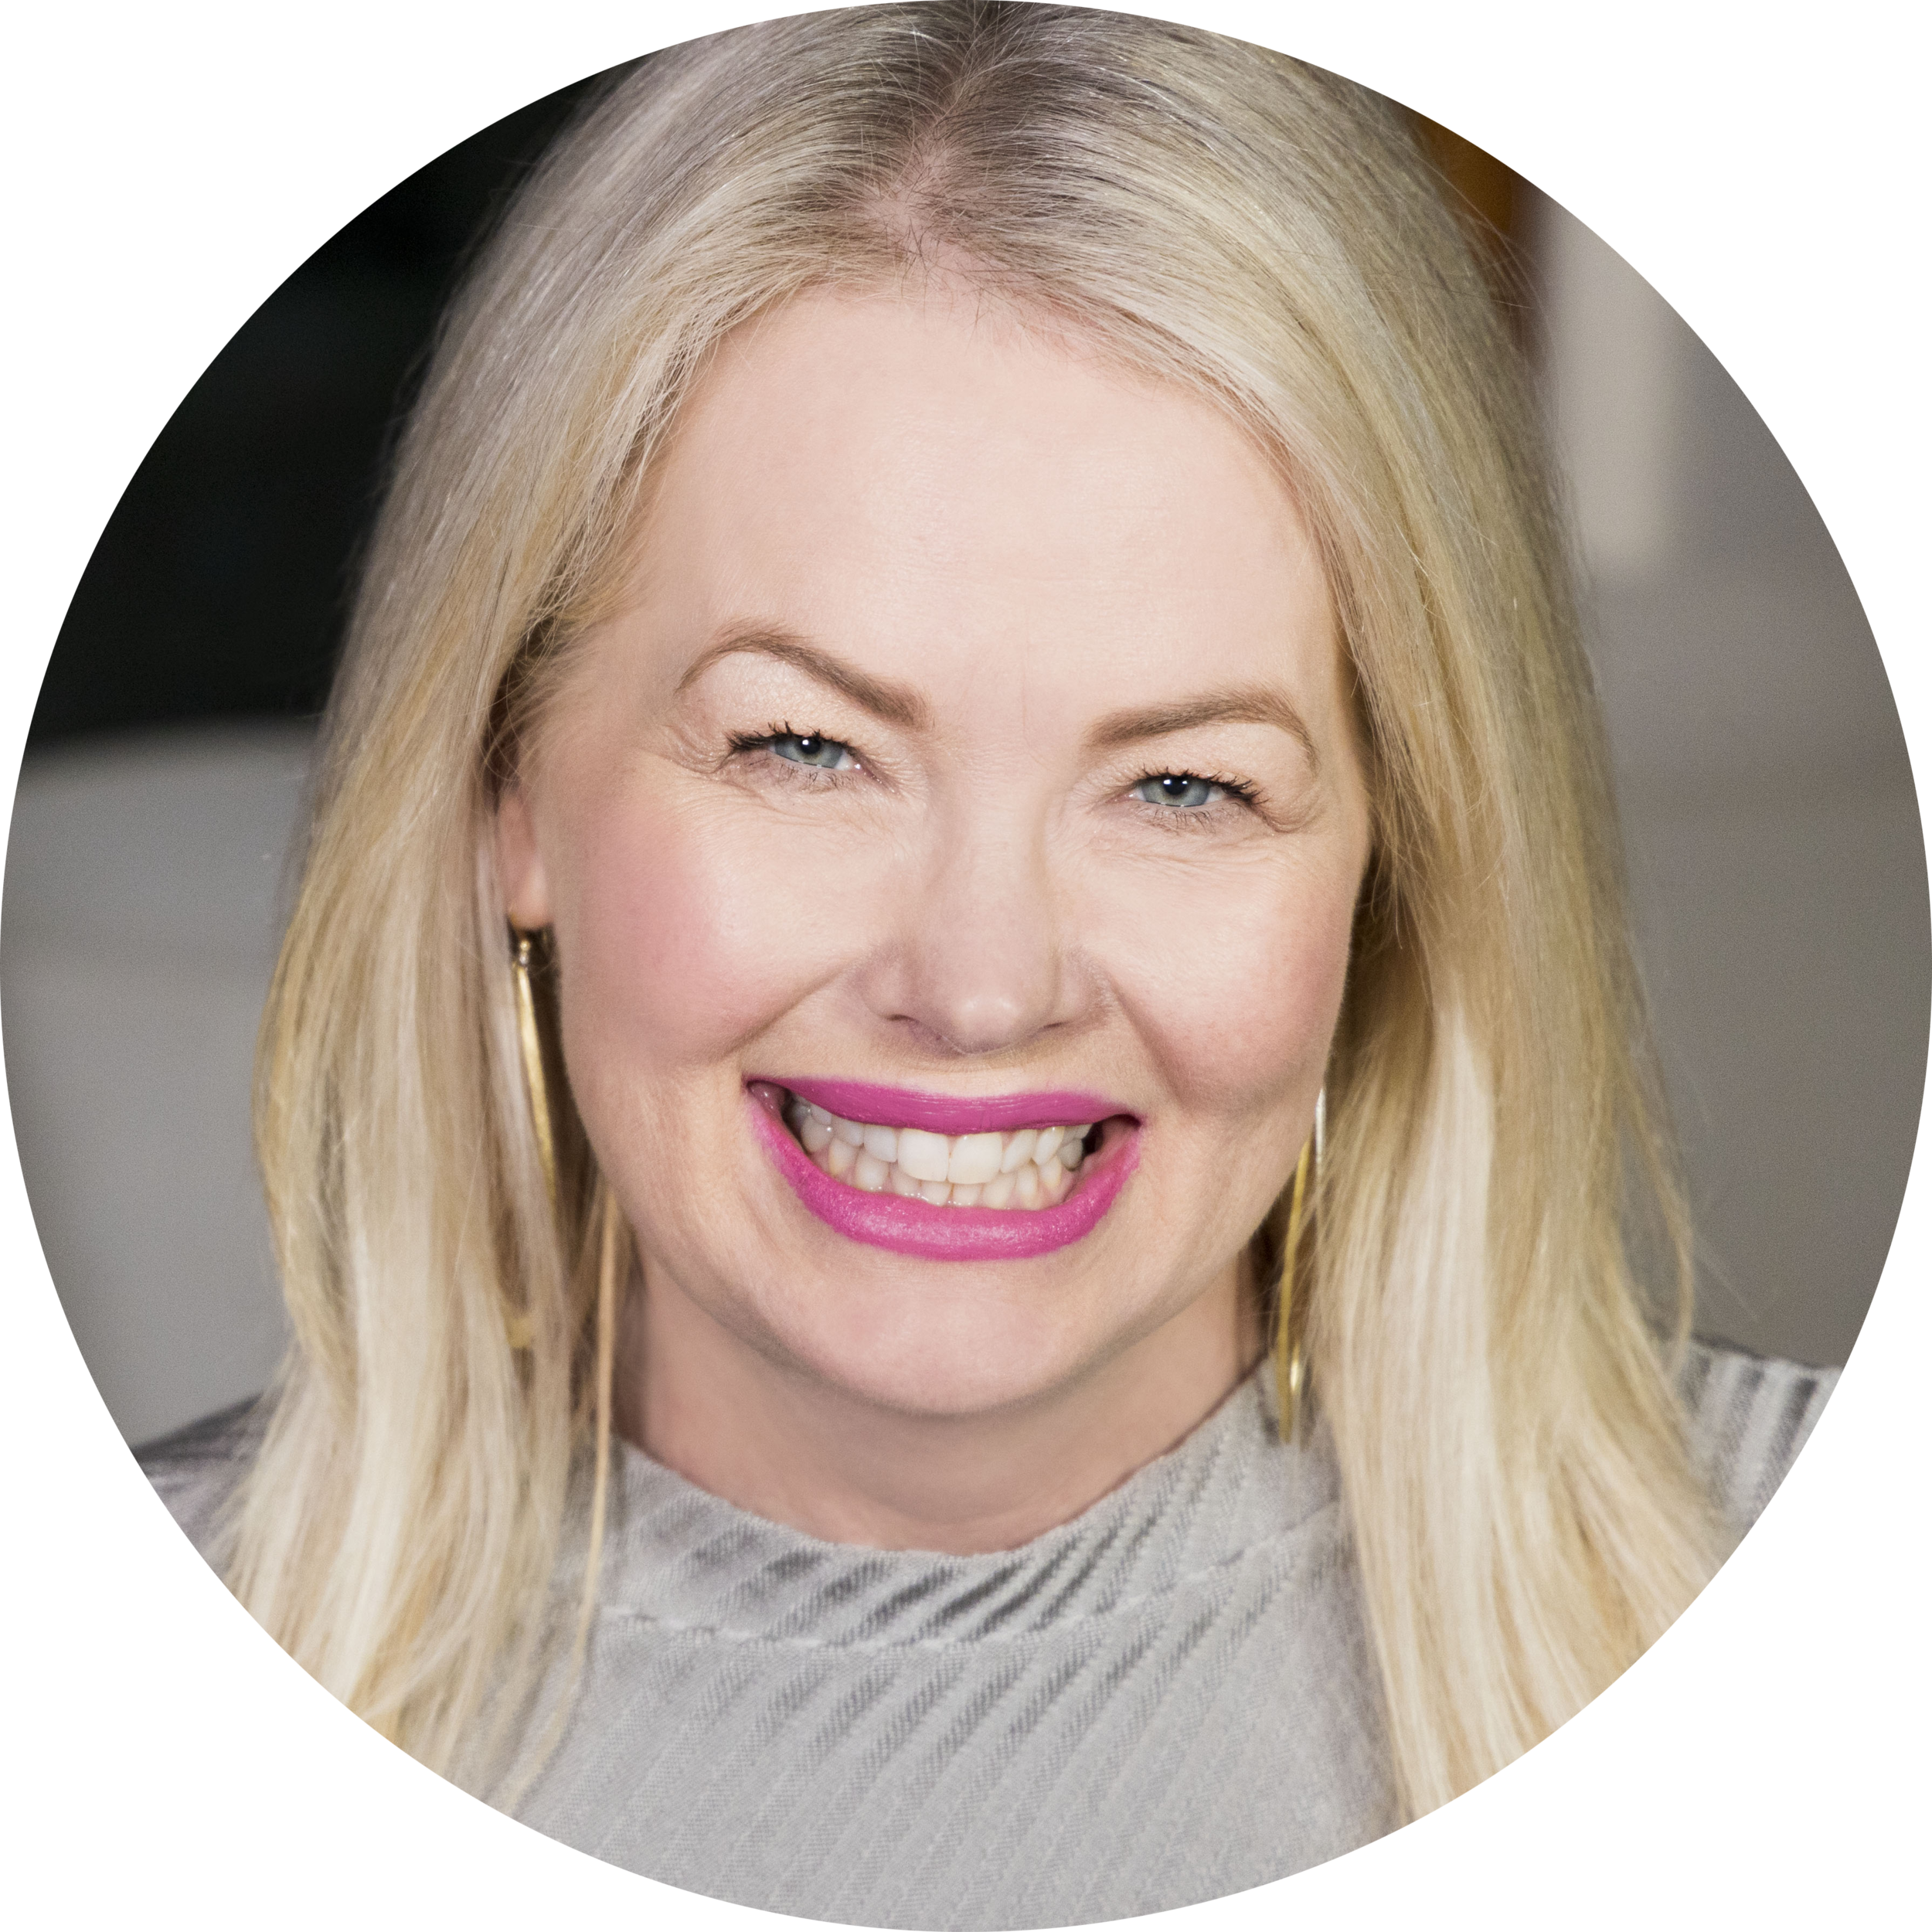 Deanna Marcus - Founder & HealerRate: $300/initial 90 min session